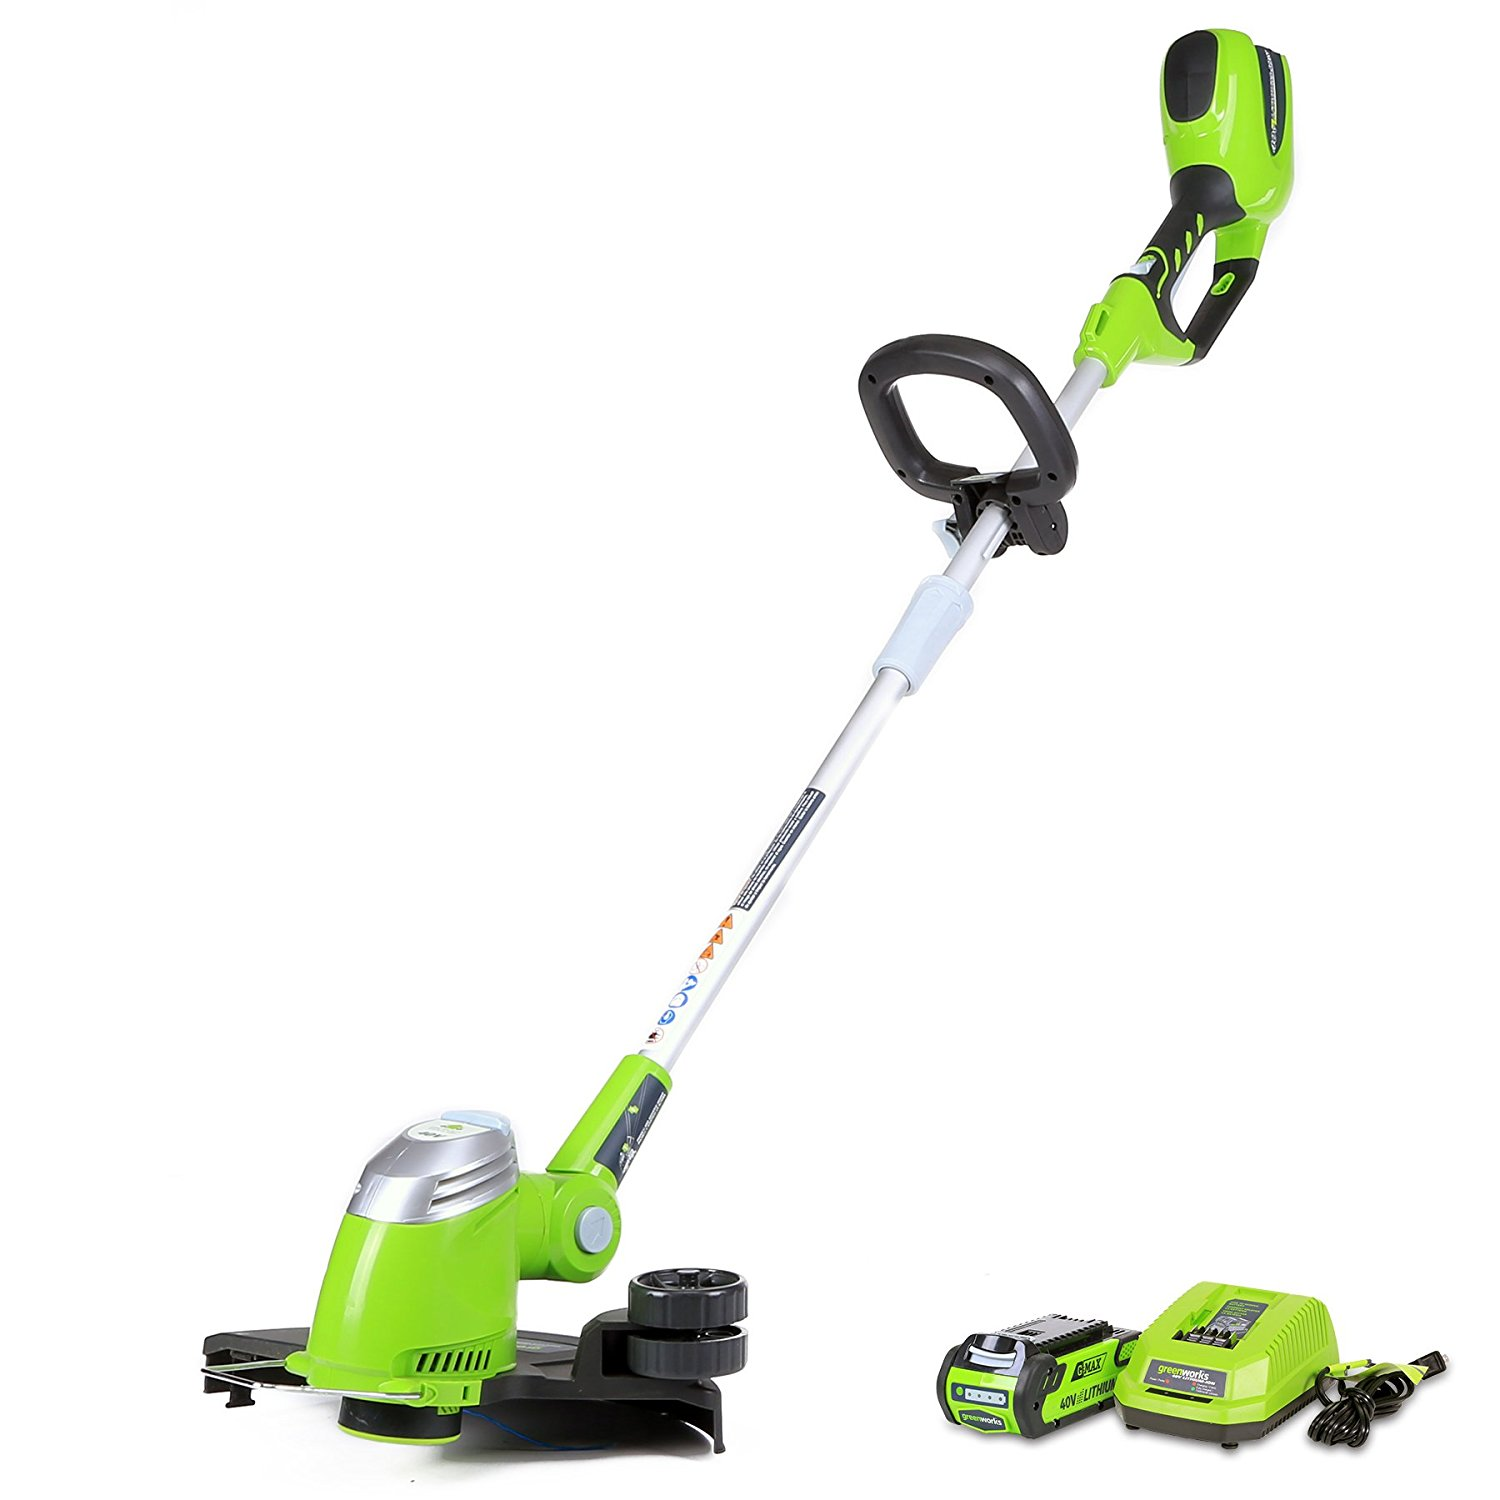 Best Weed Eater-GreenWorks 21302 G-MAX